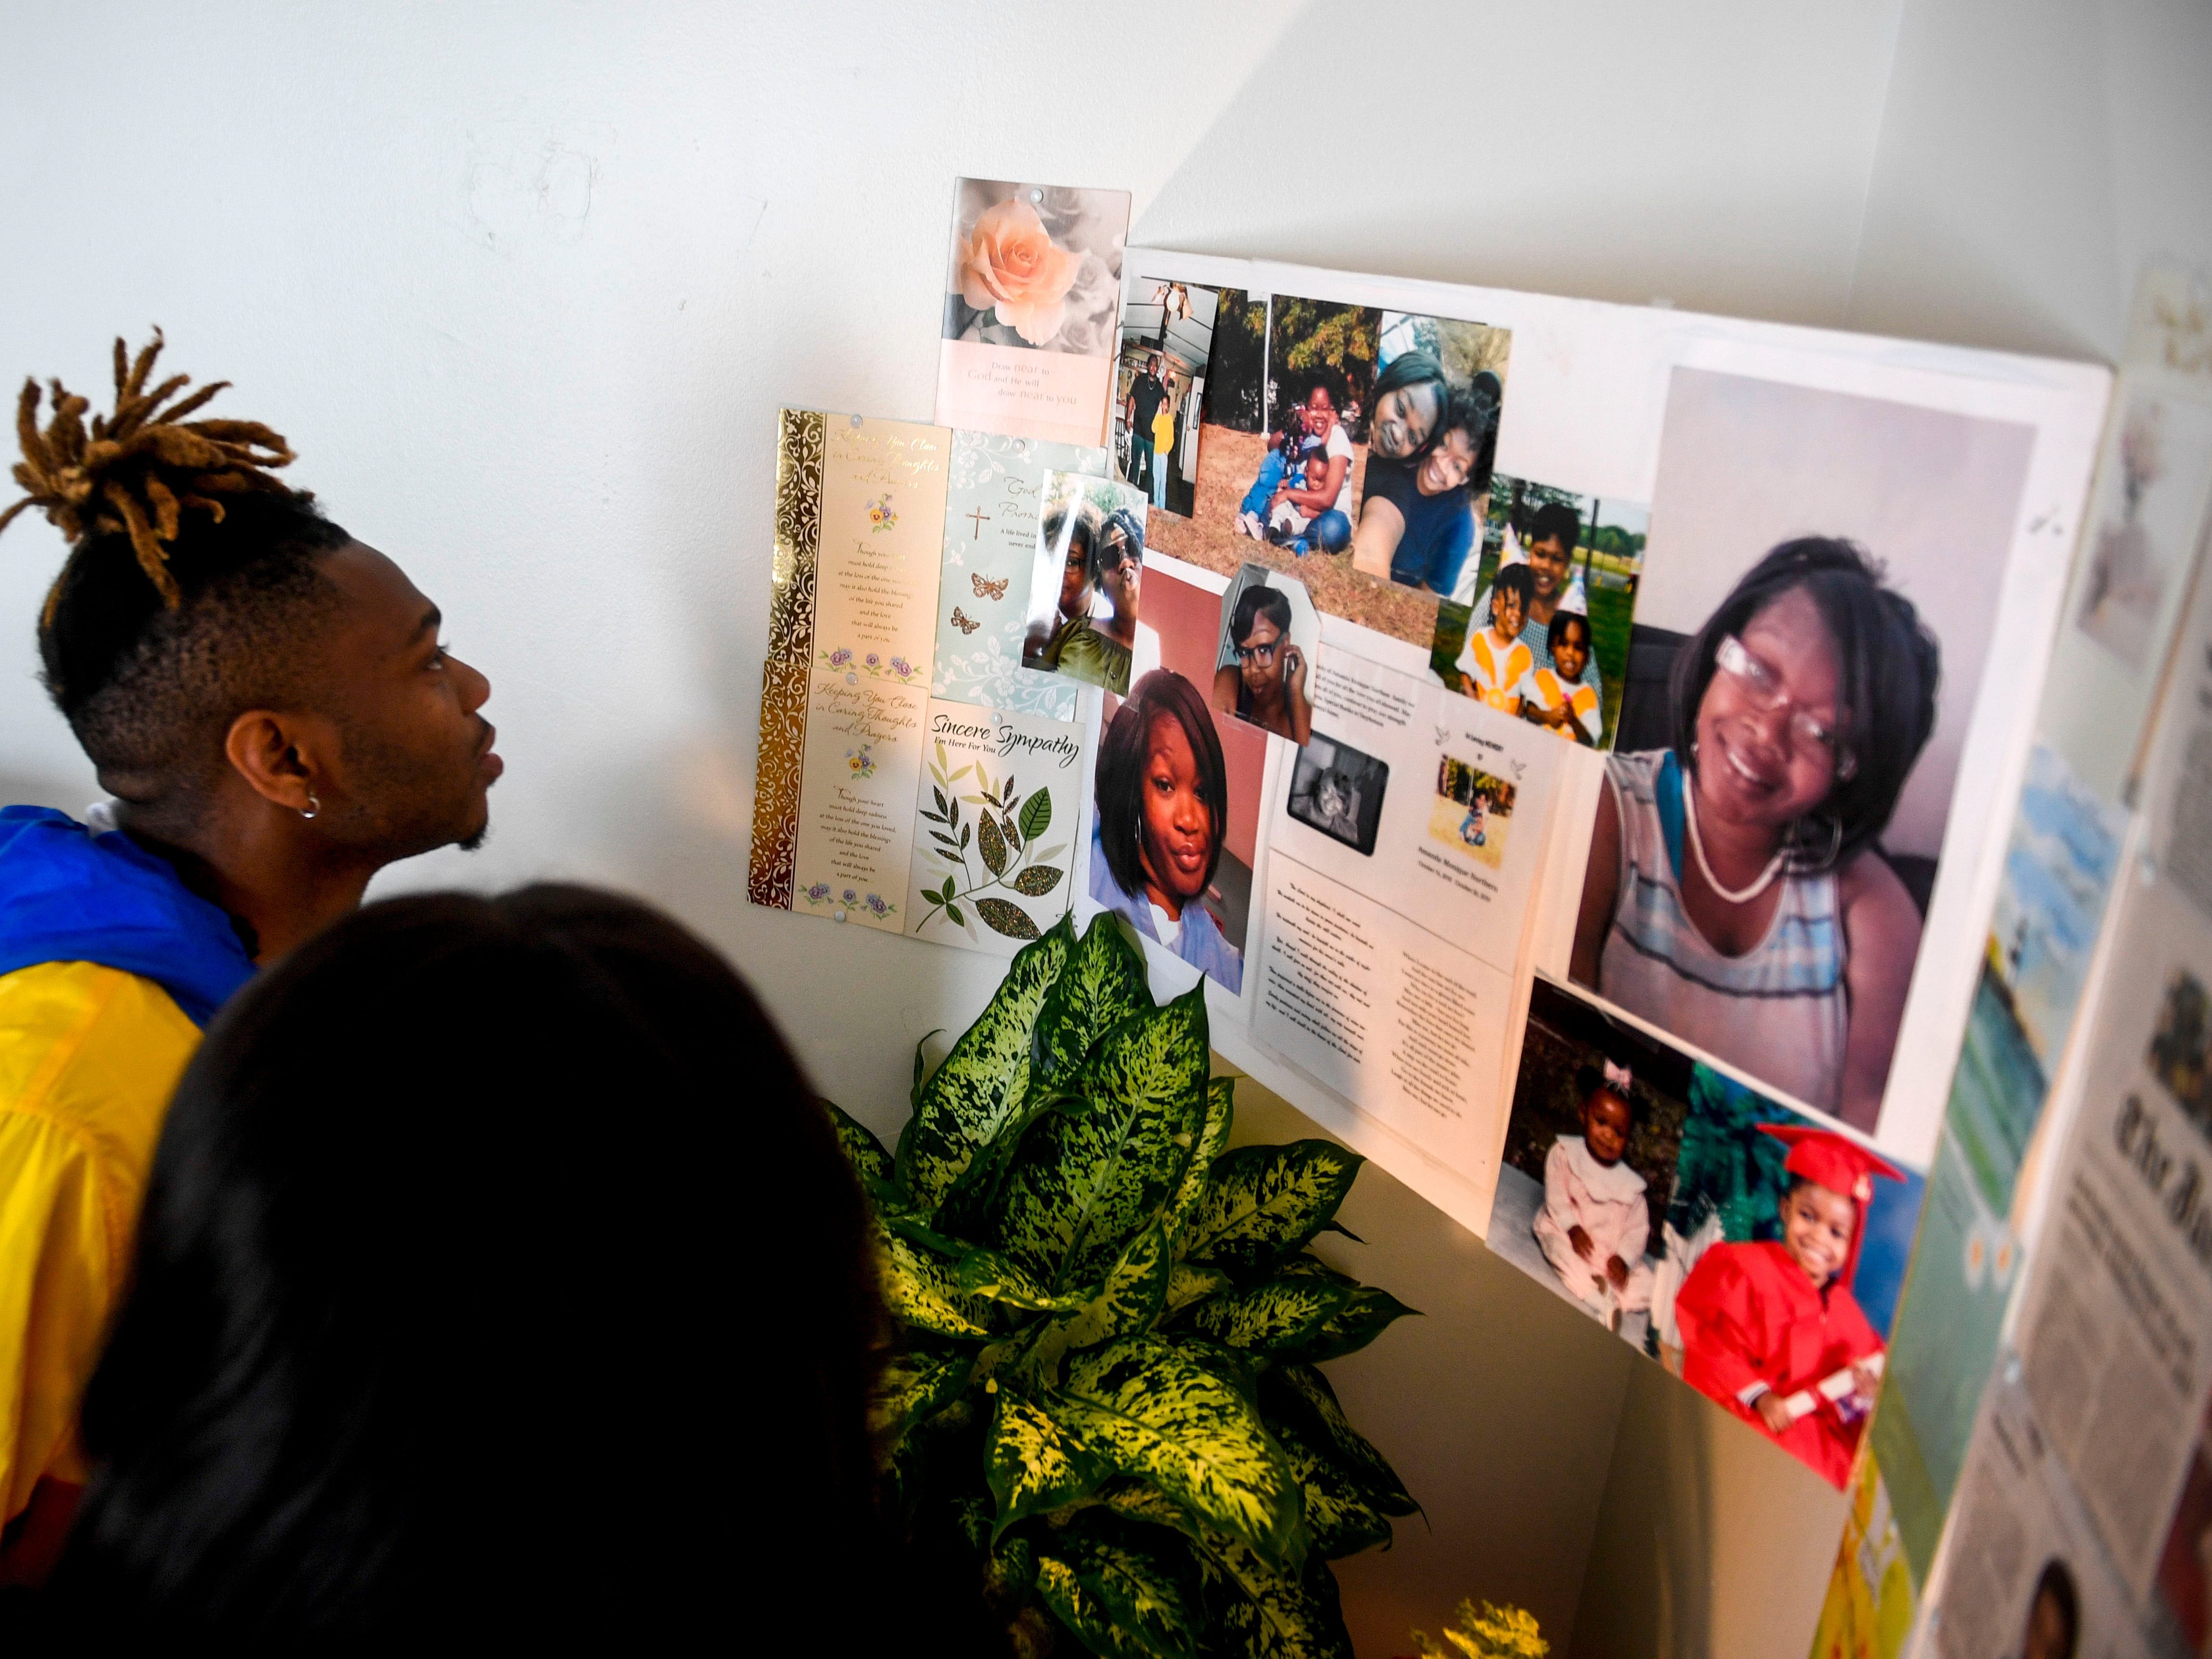 Ashley Hassell and Markel Jackson observe a memorial for Amanda Northern, a family member they lost to domestic violence at Alicia Hassell's home in Jackson, Tenn., on Friday, Nov. 2, 2018.